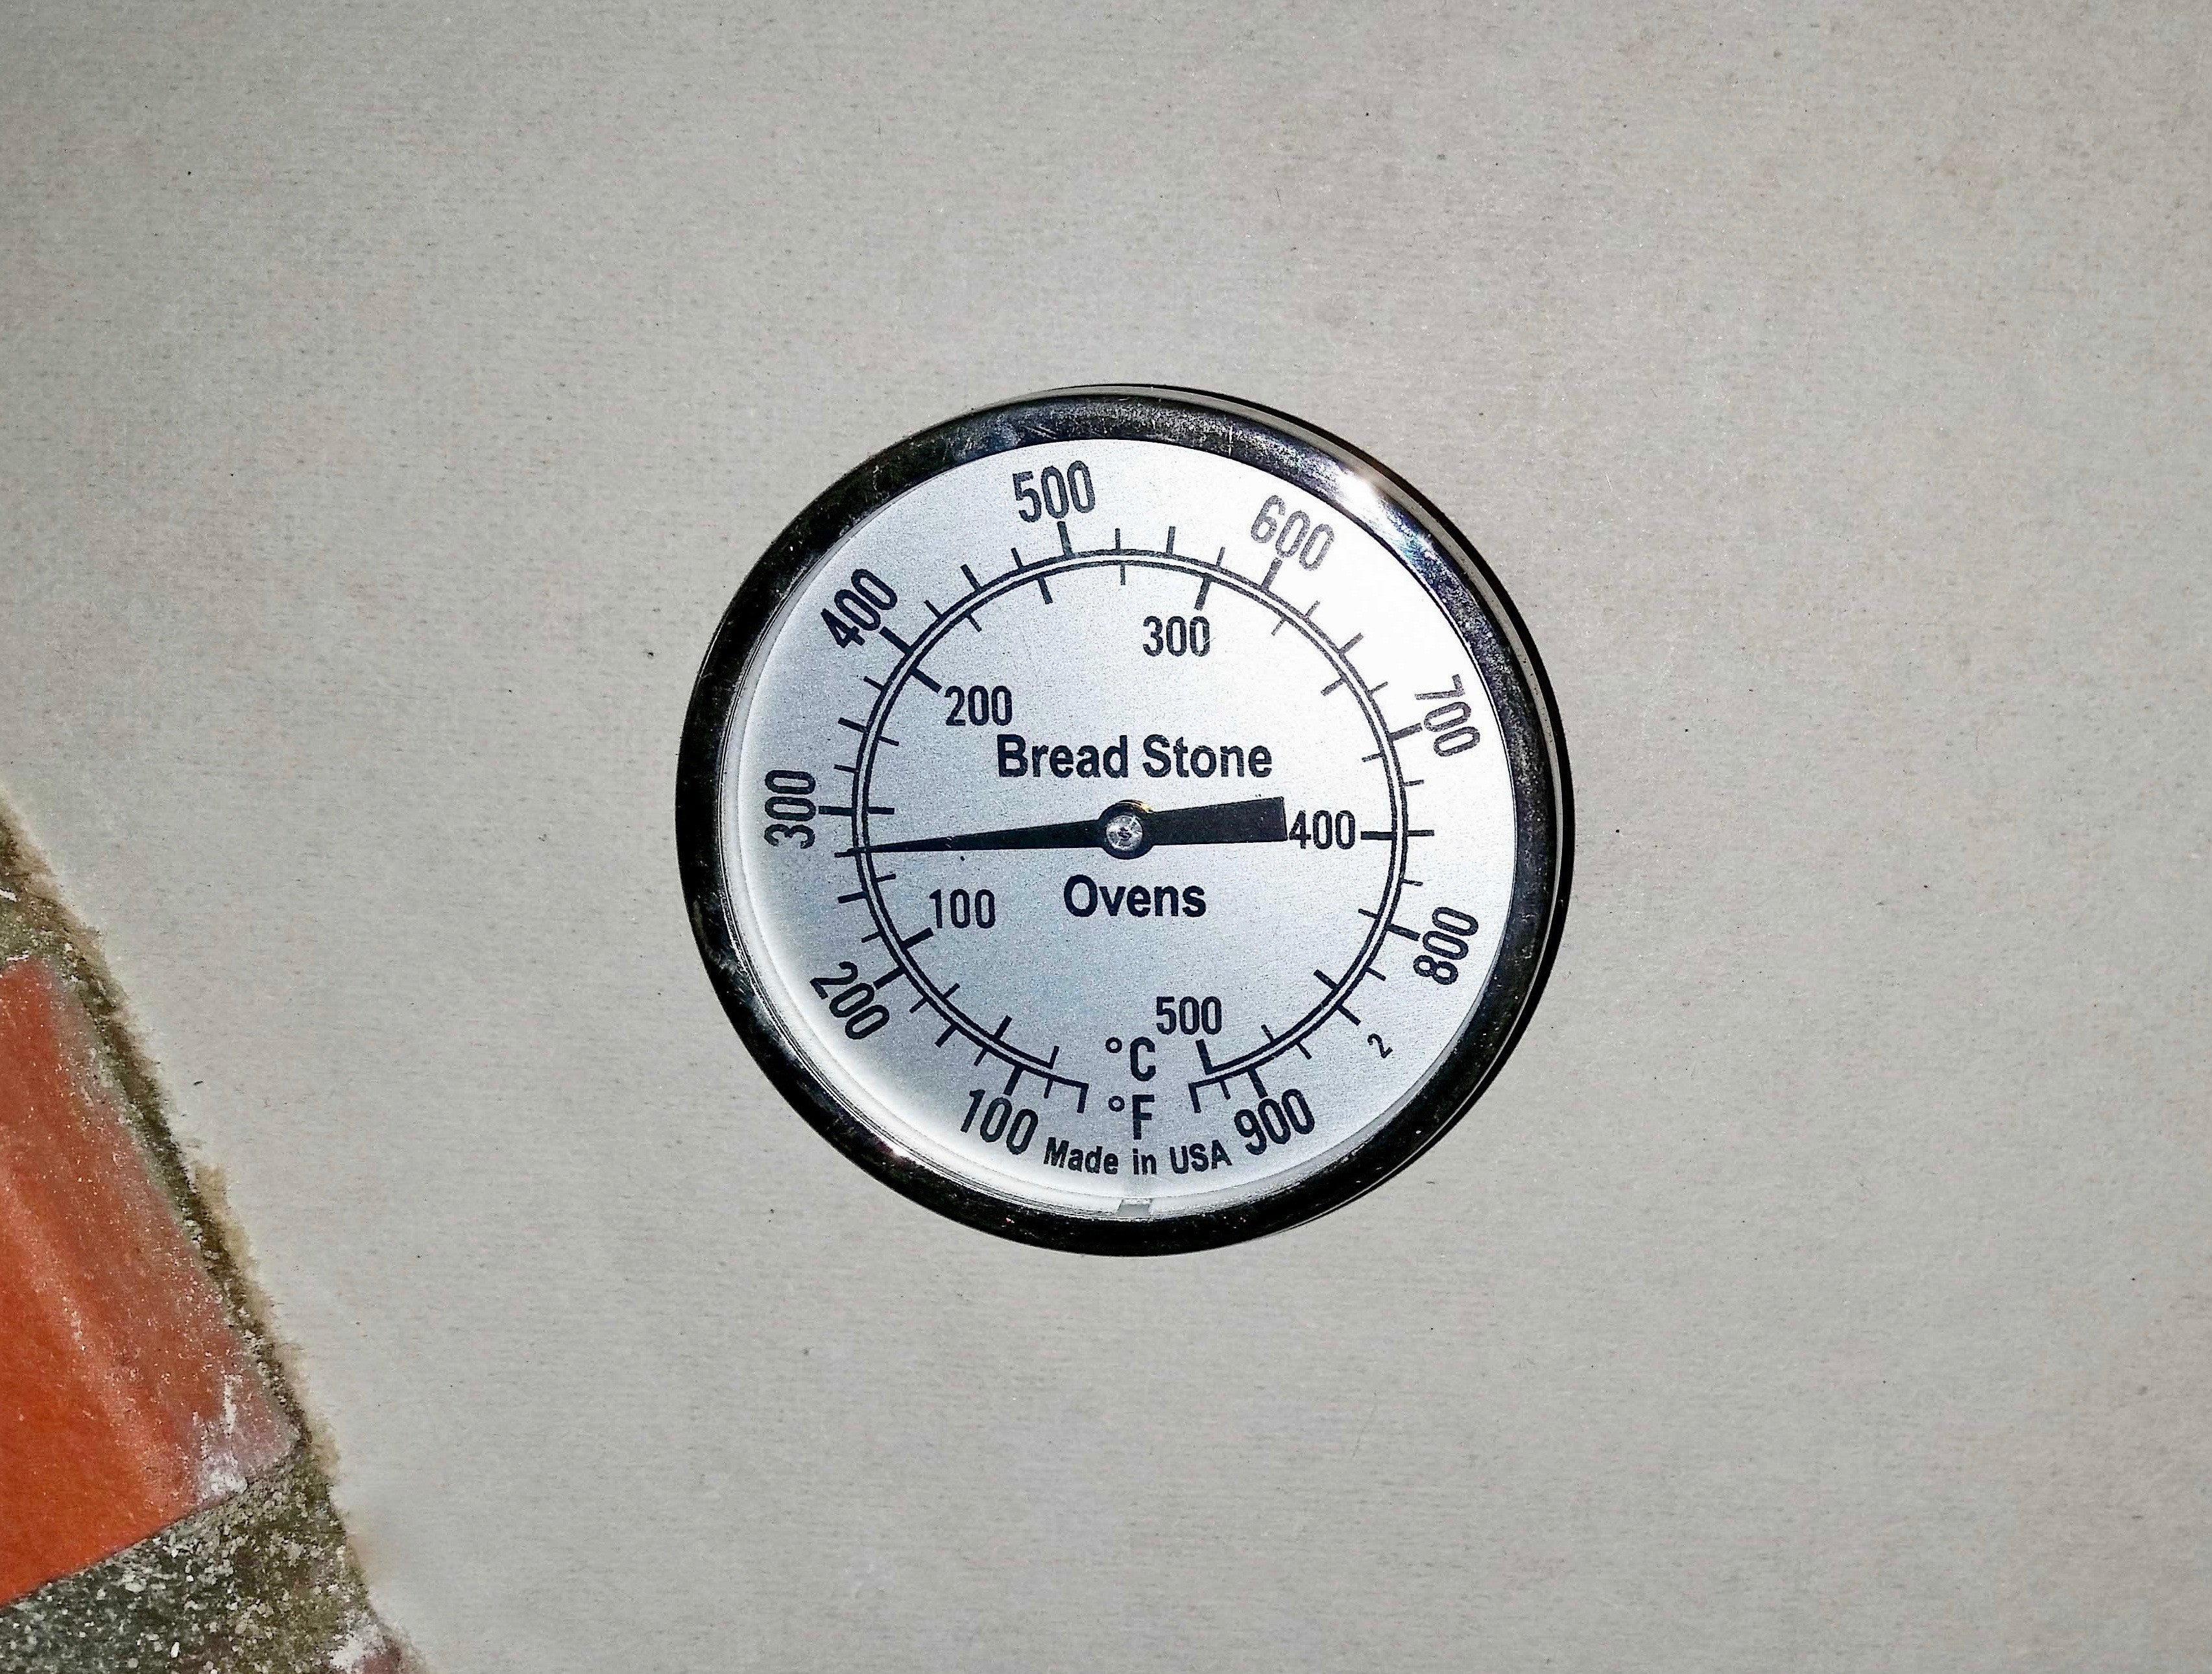 16 Quot Long Probe Dome Thermometer For Wood Fired Oven The